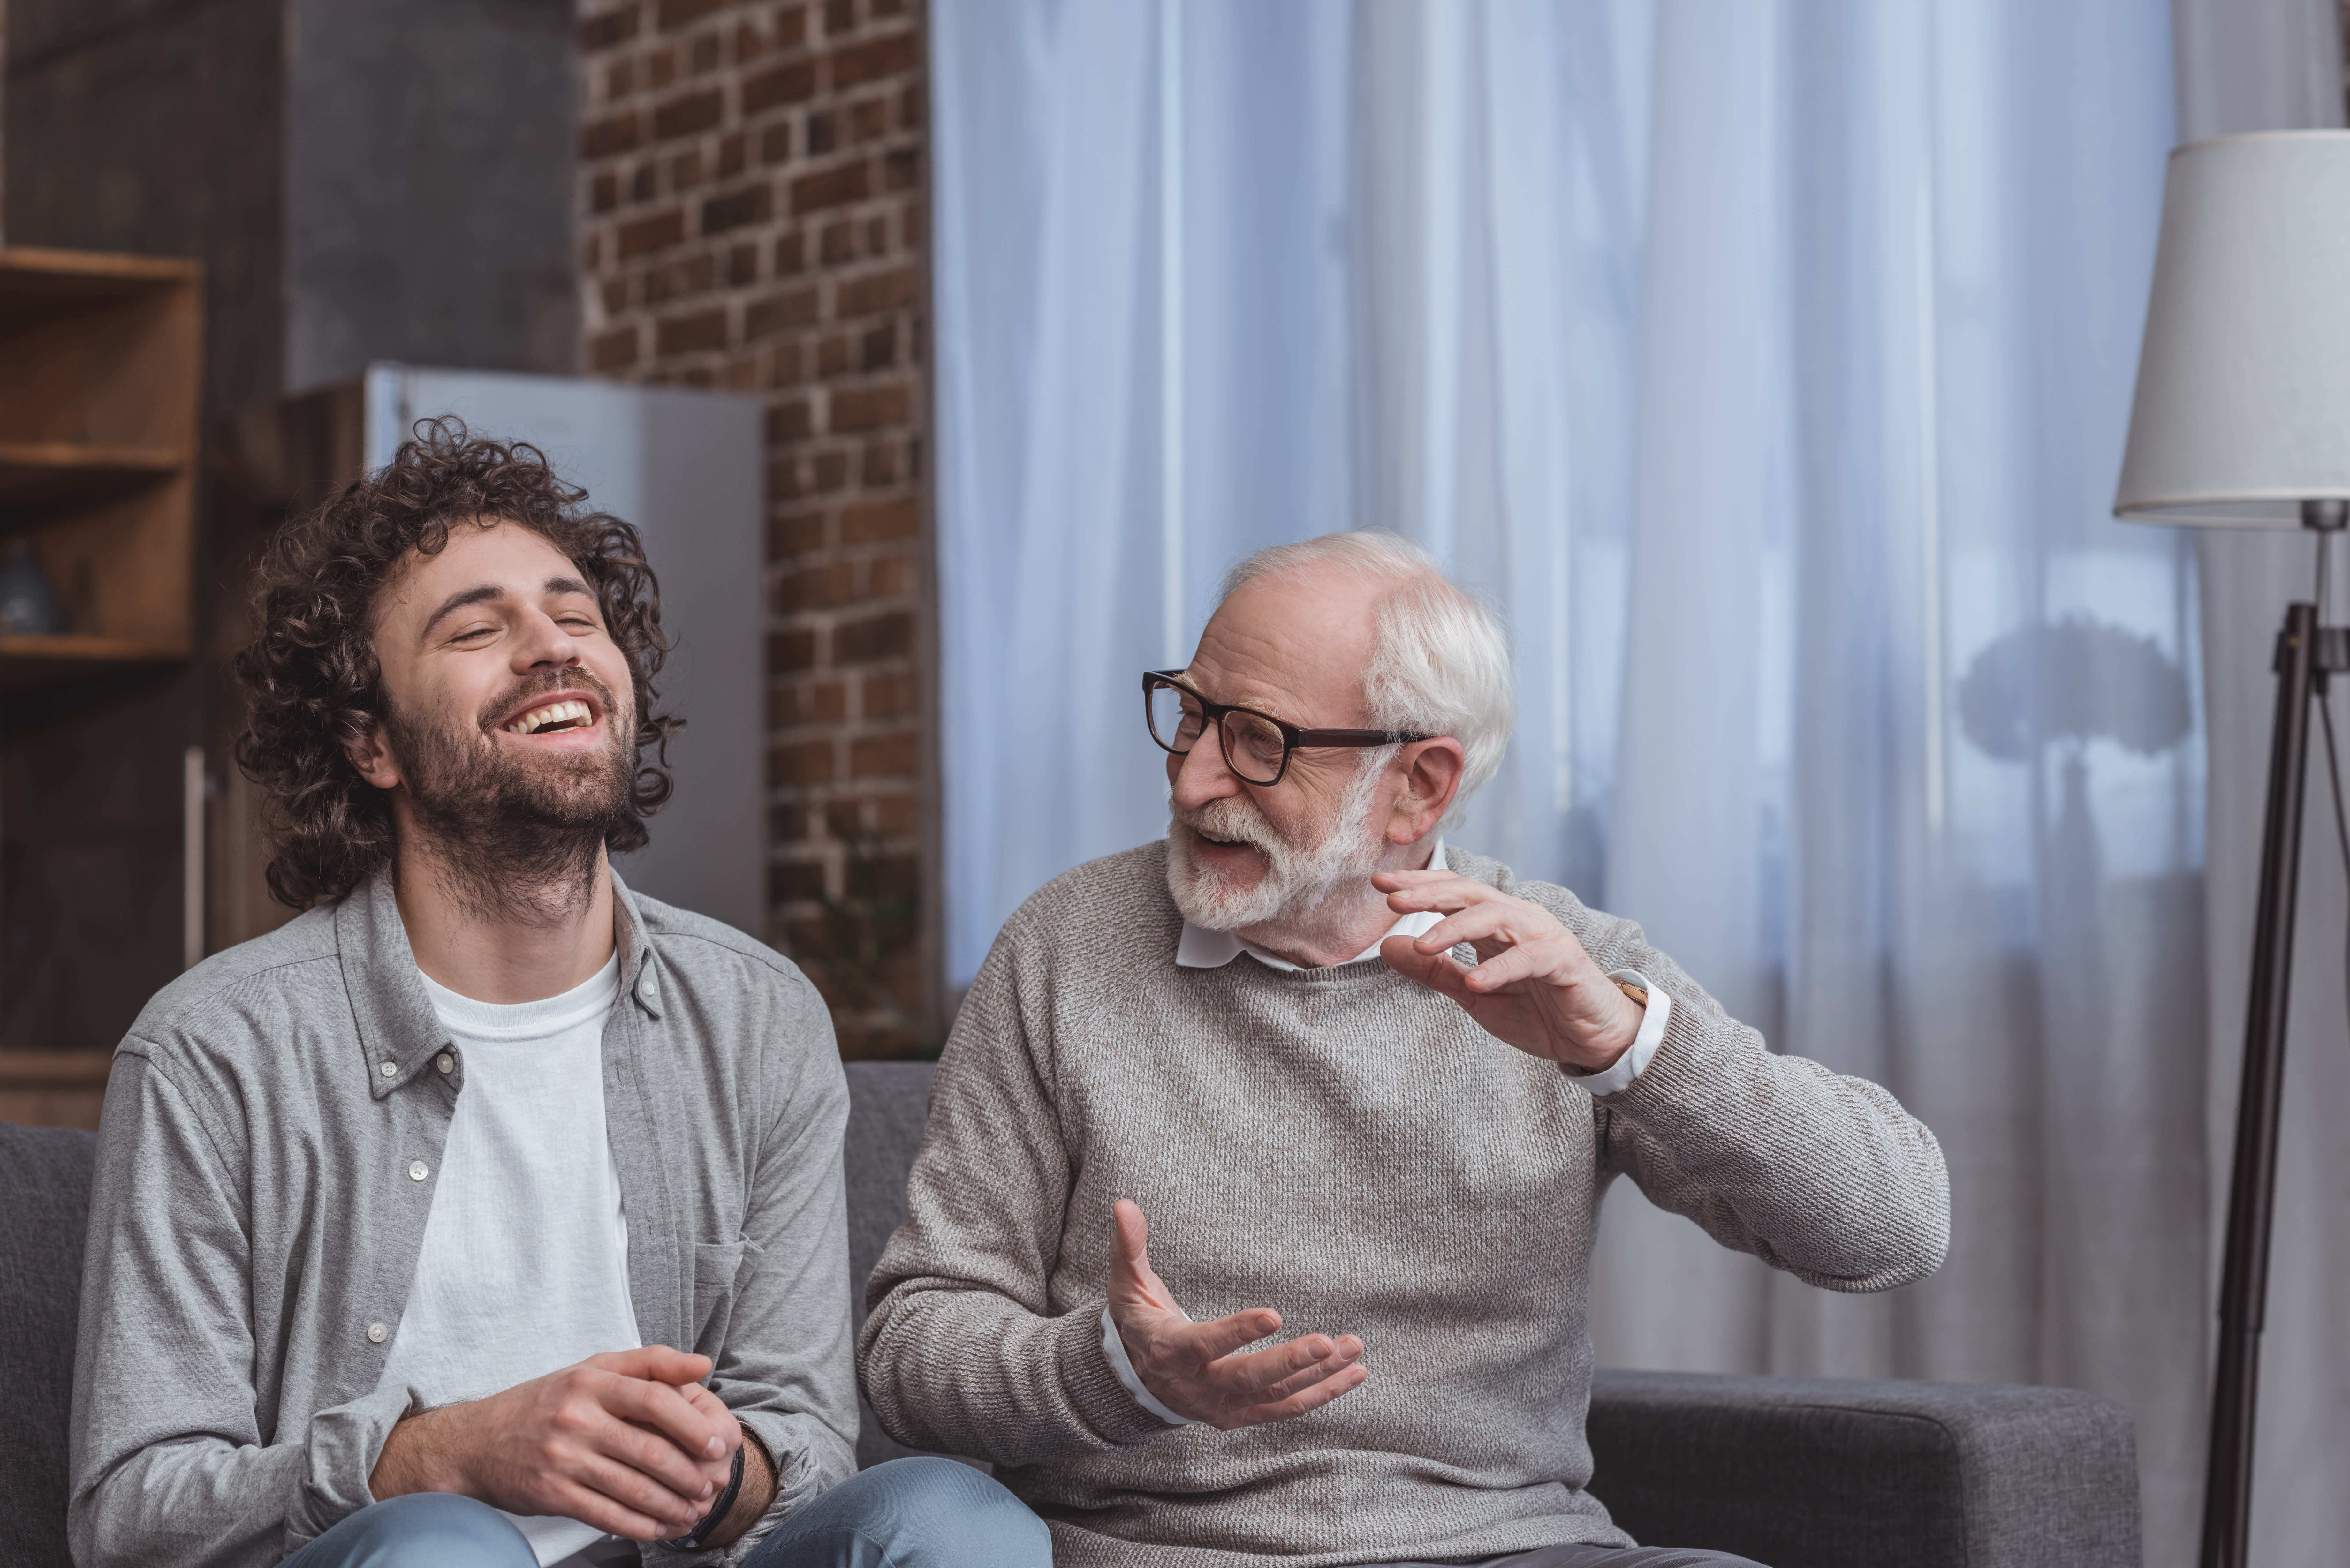 Father having conversation with son